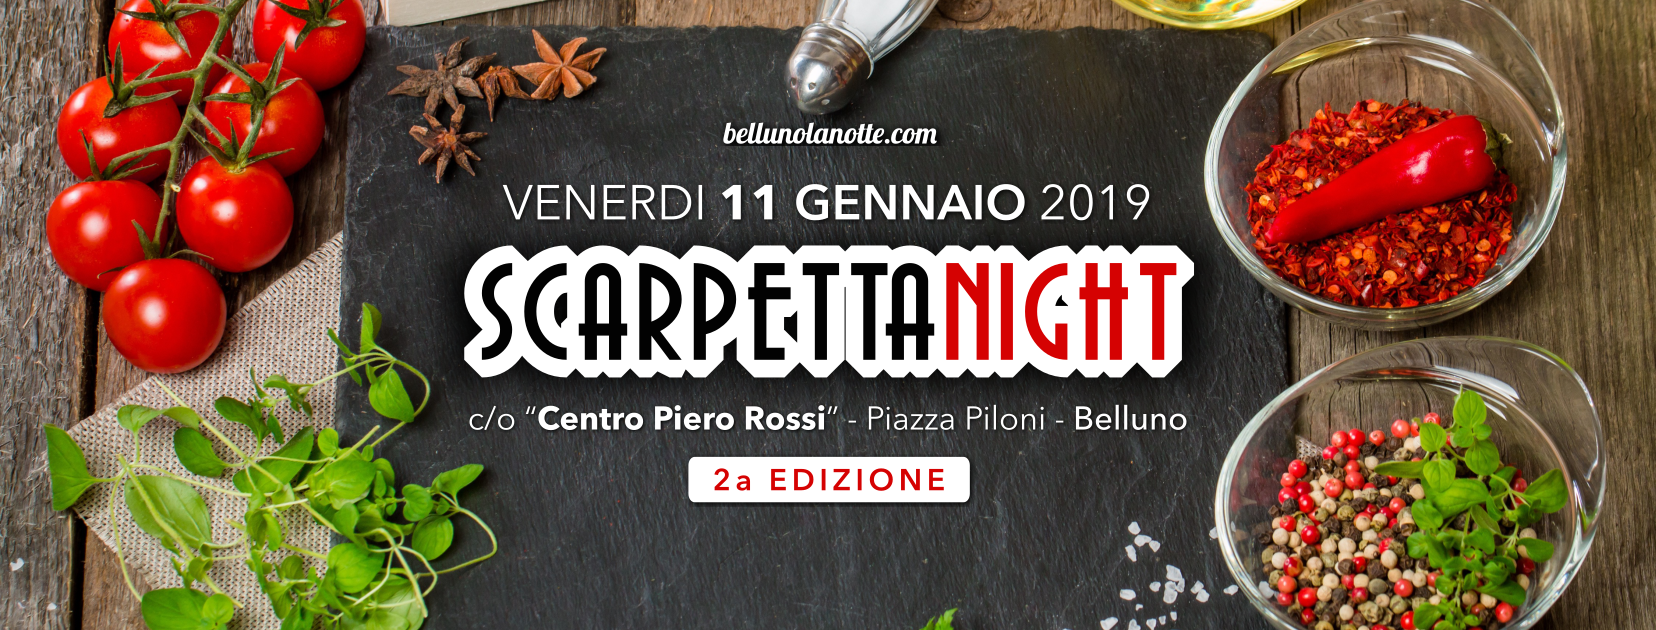 Scarpetta Night 2019 - Belluno